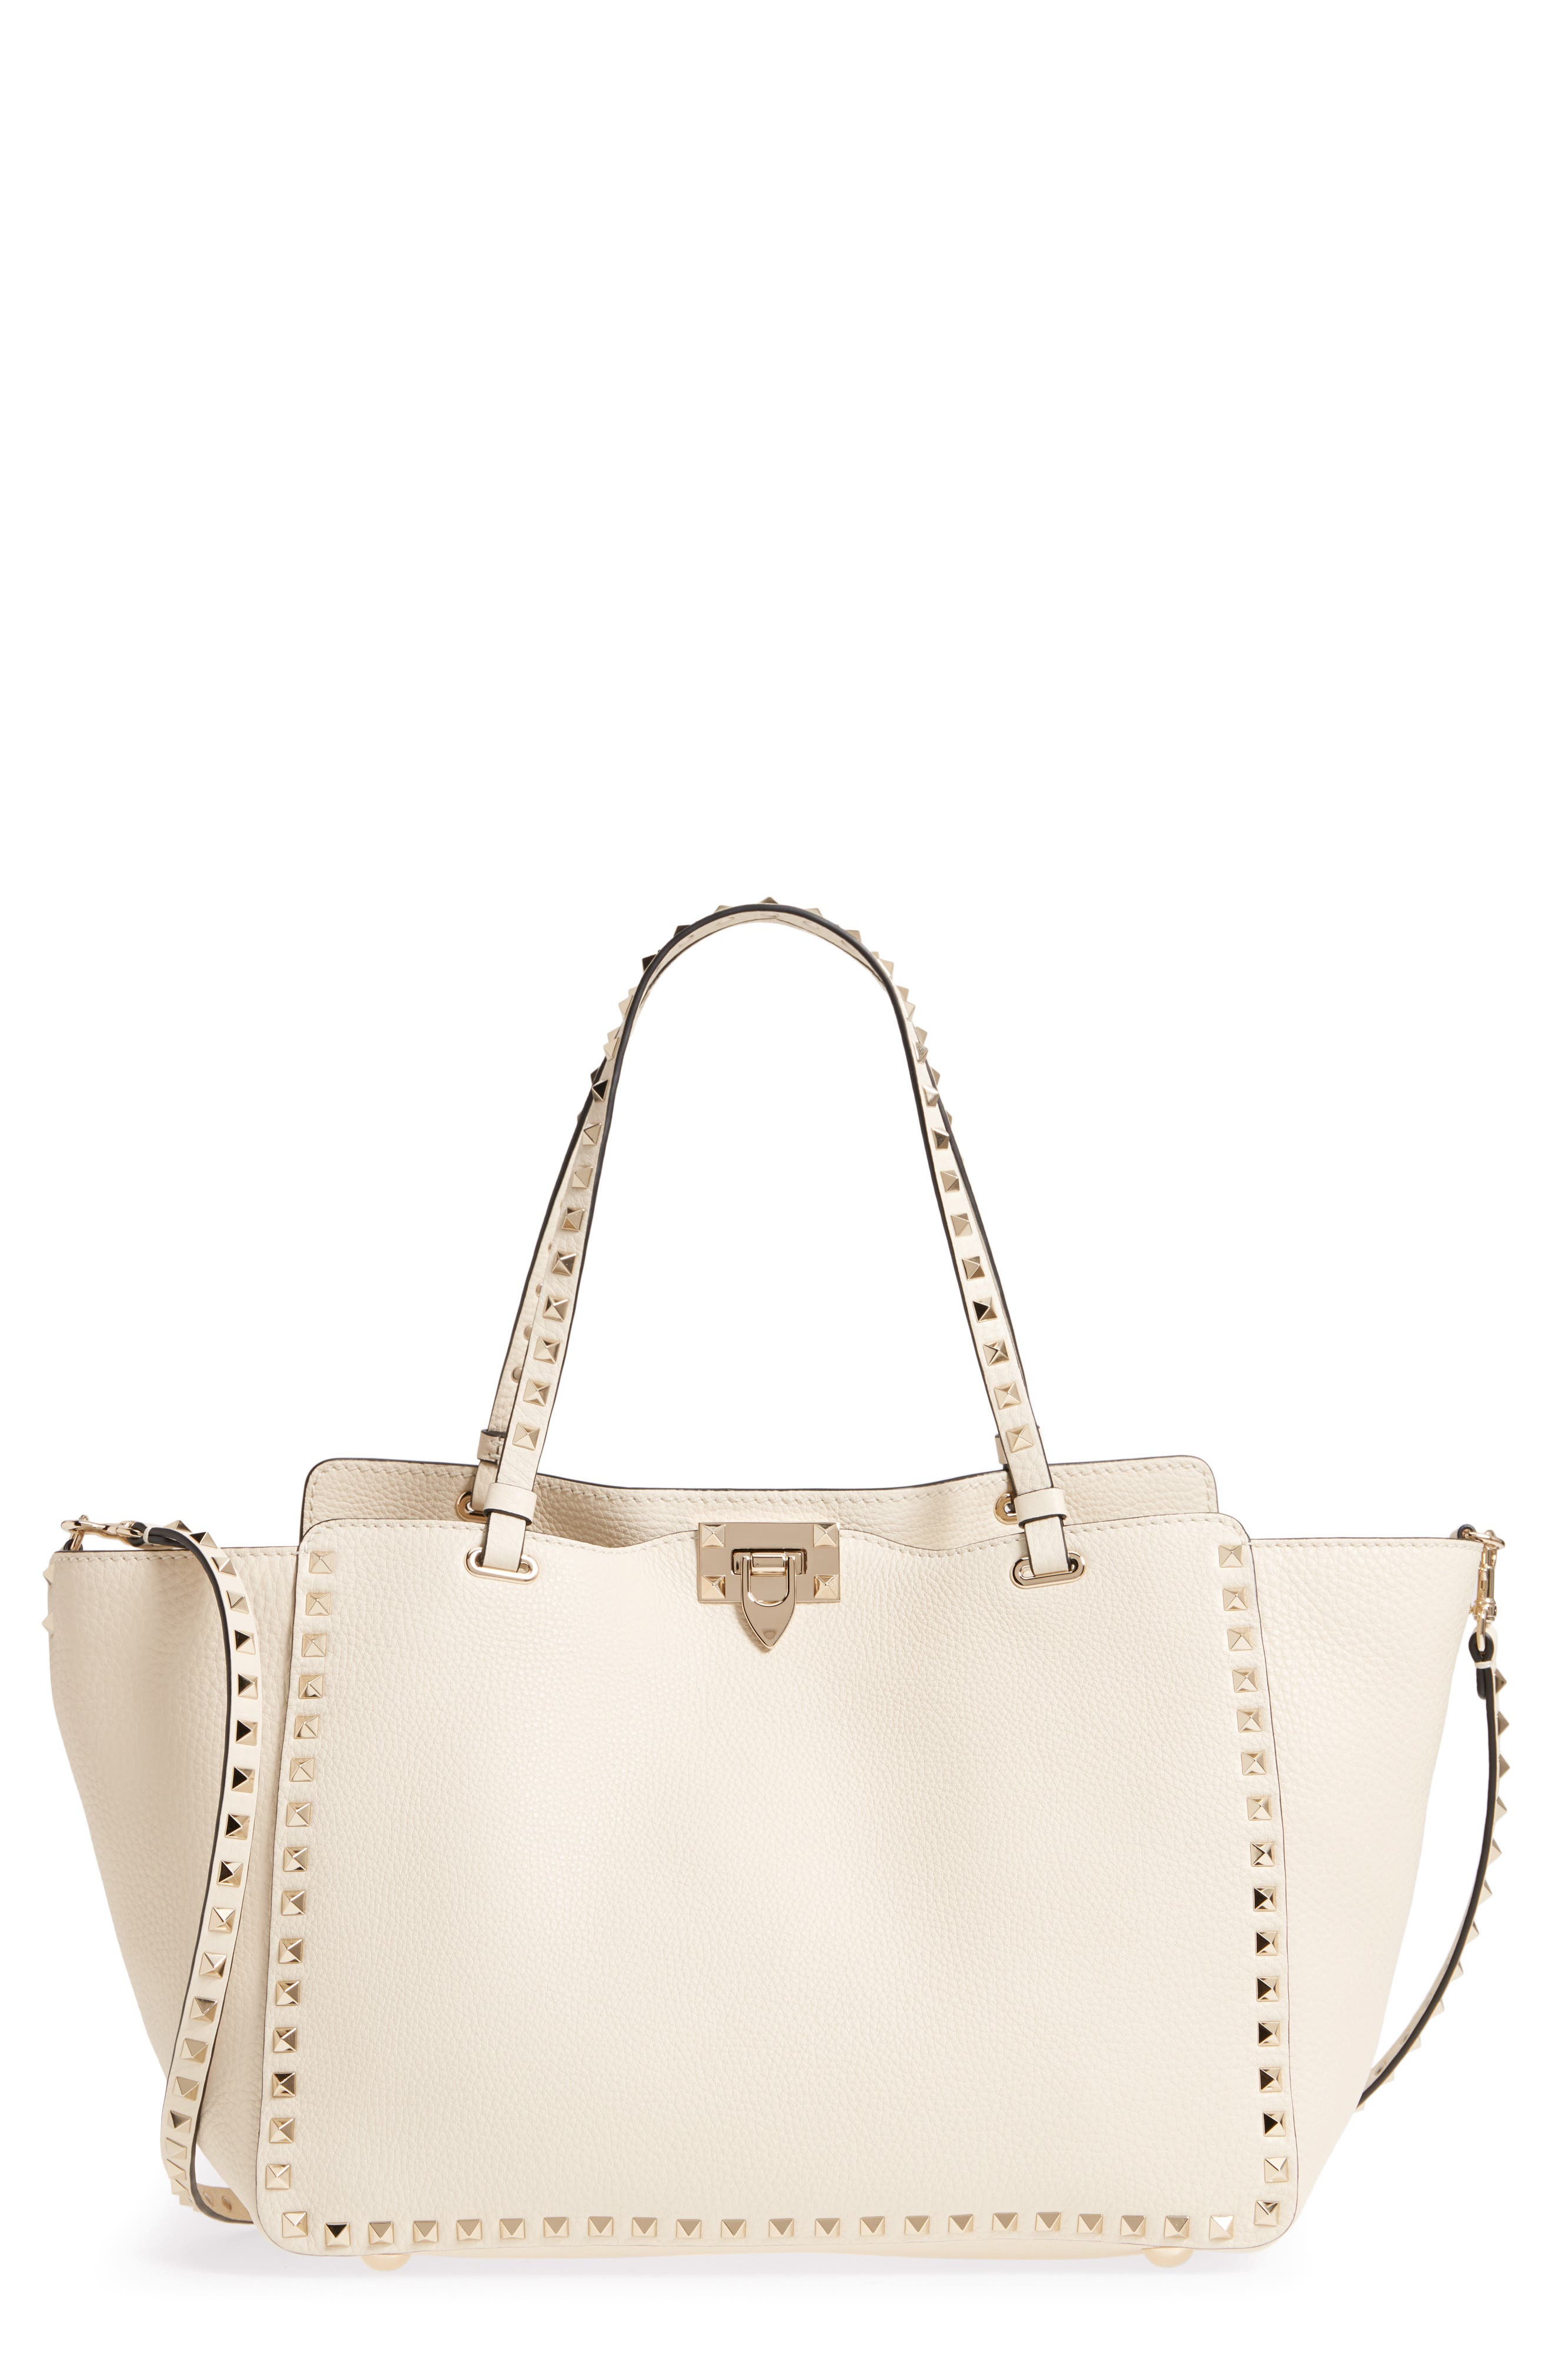 Main Image - VALENTINO GARAVANI Medium Rockstud Leather Double Handle Tote